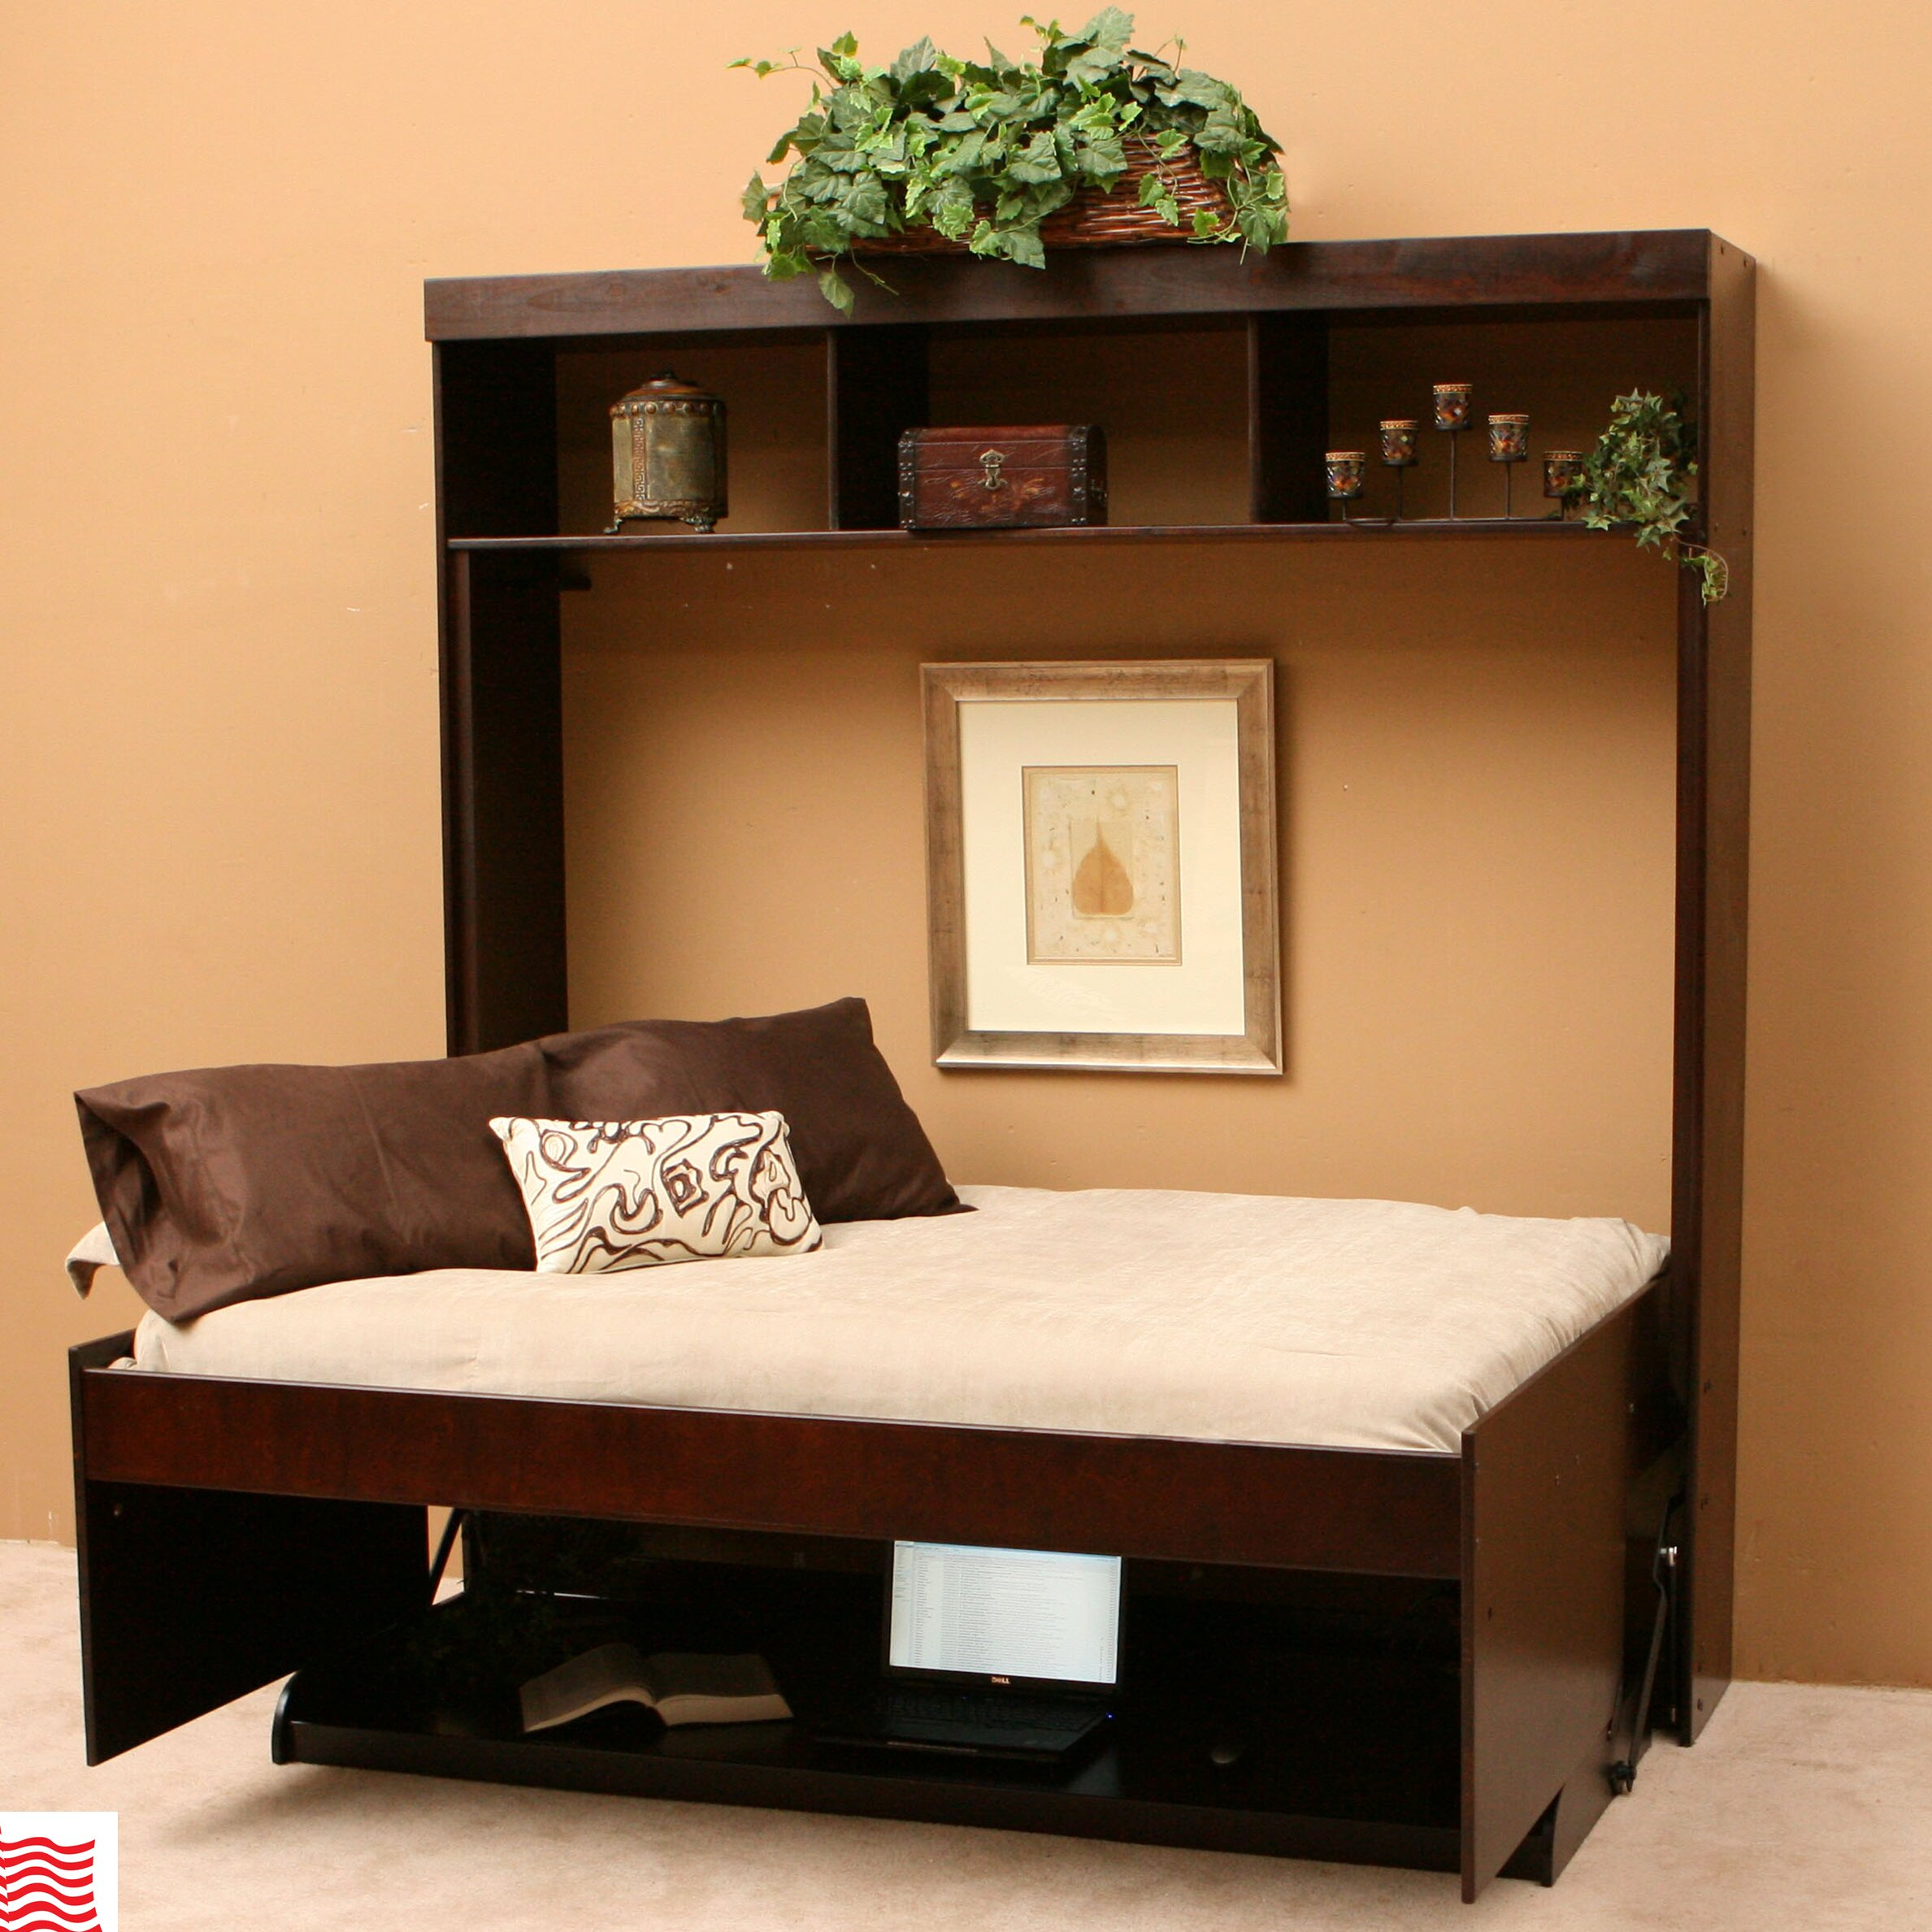 Designer Furniture Warehouse Columbus Ohio: Wallbeds Modern Birch Murphy Bed & Reviews